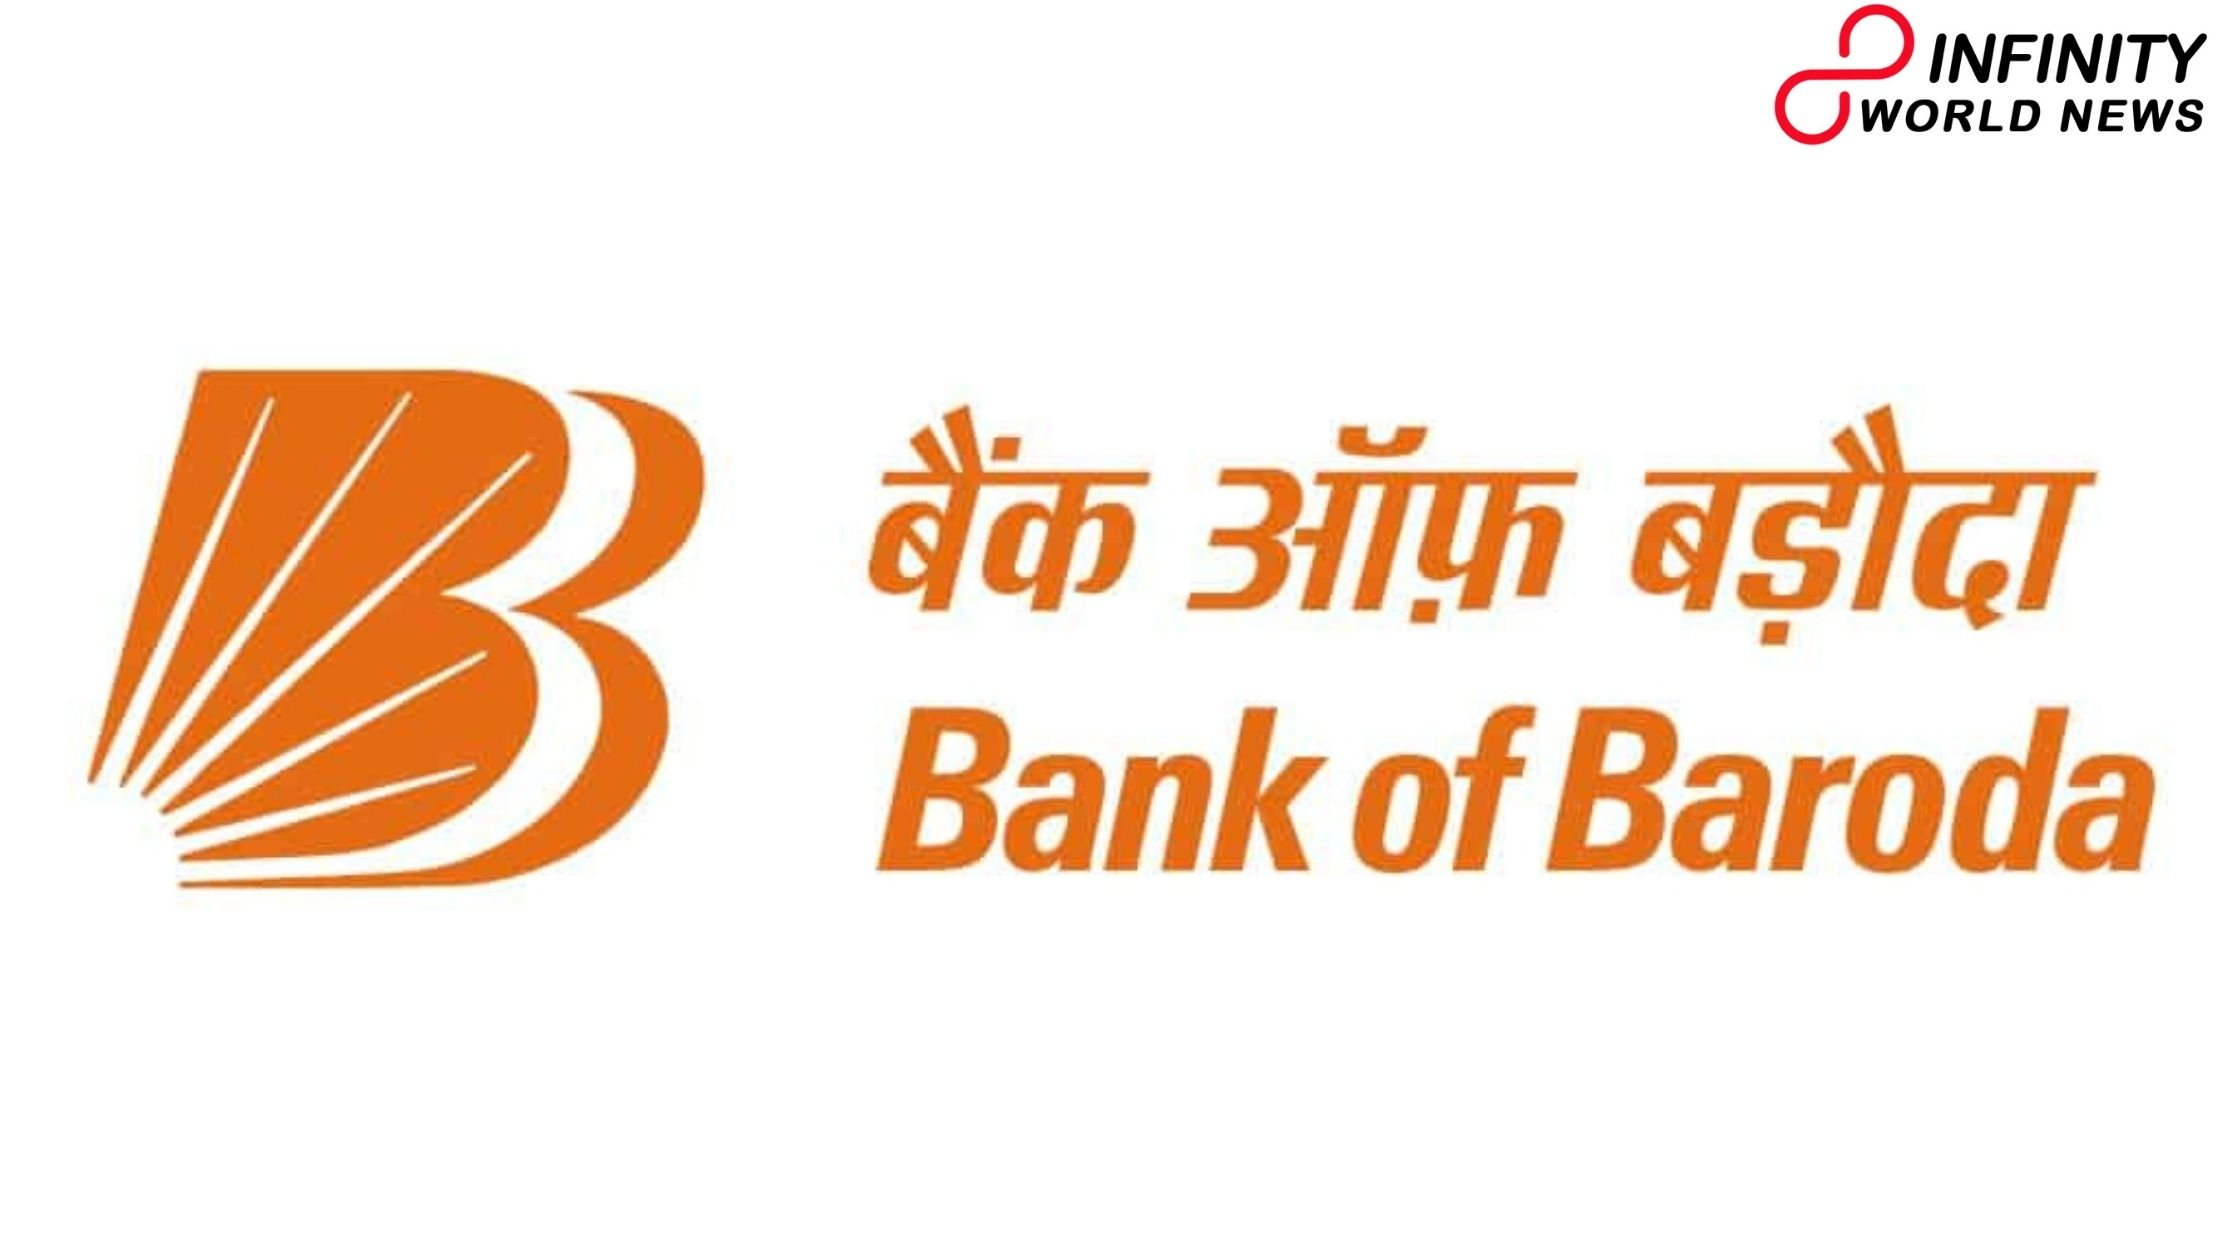 Indian Army and Bank of Baroda go into MoU for Baroda Military Salary Package